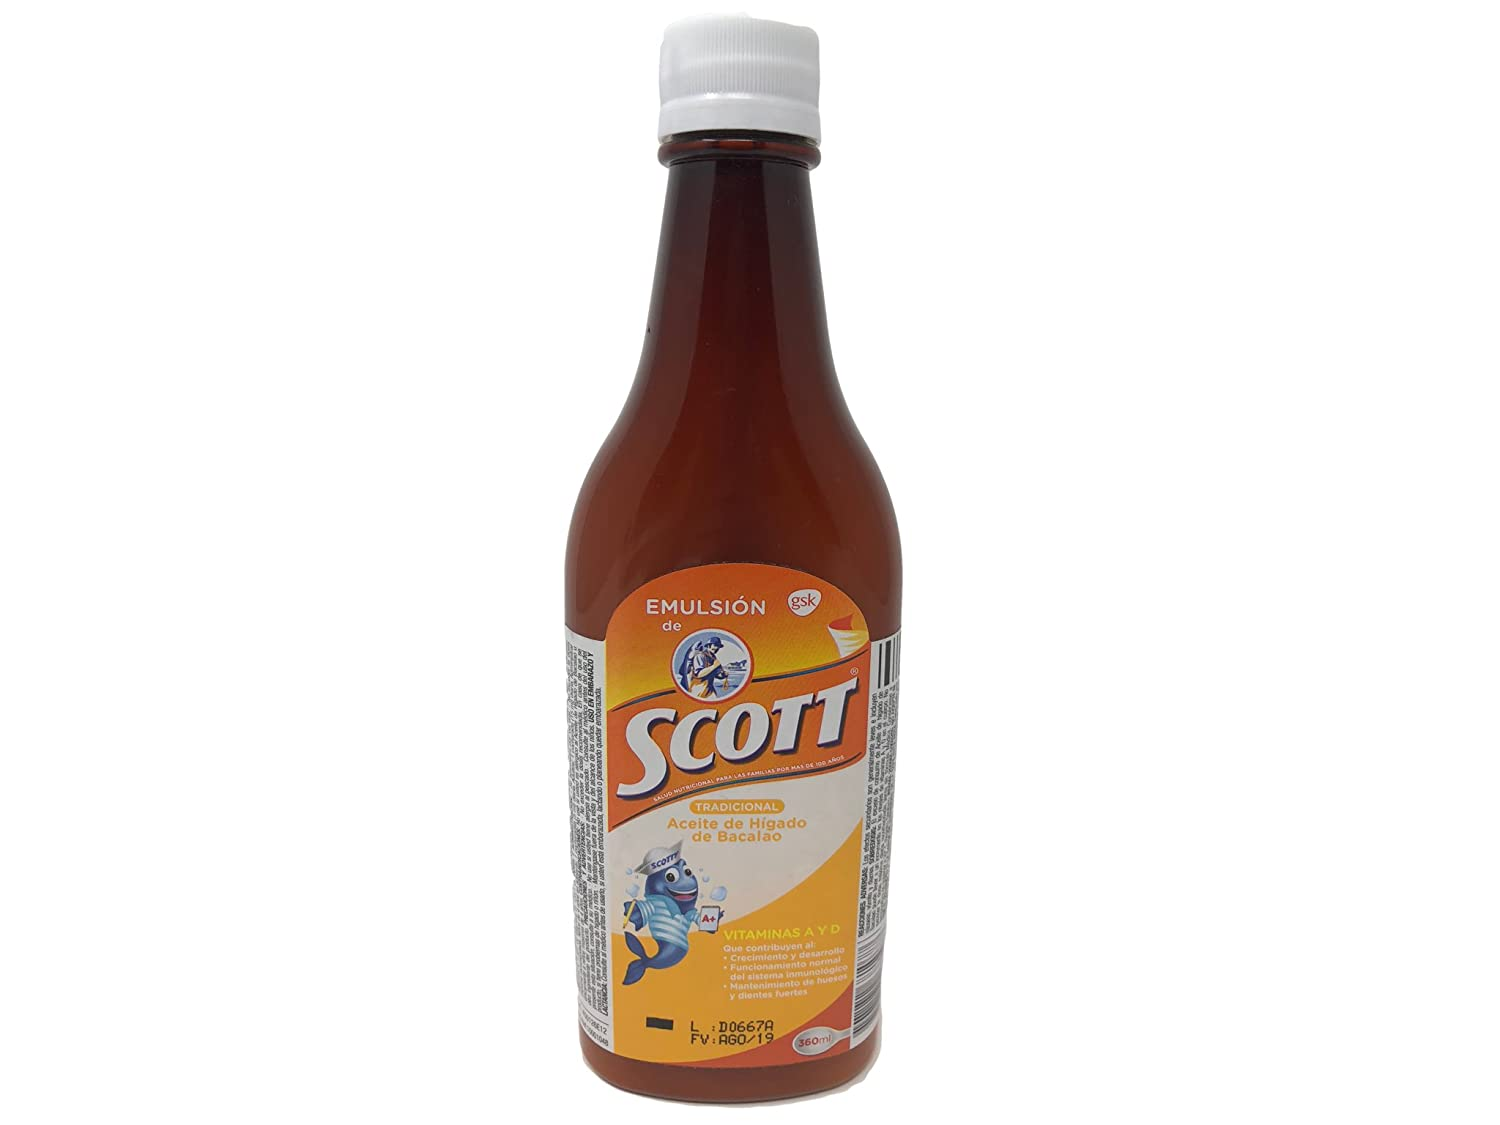 Amazon.com : Emulsion de Scott (Sabor Tradicional) (360 ml) : Grocery & Gourmet Food